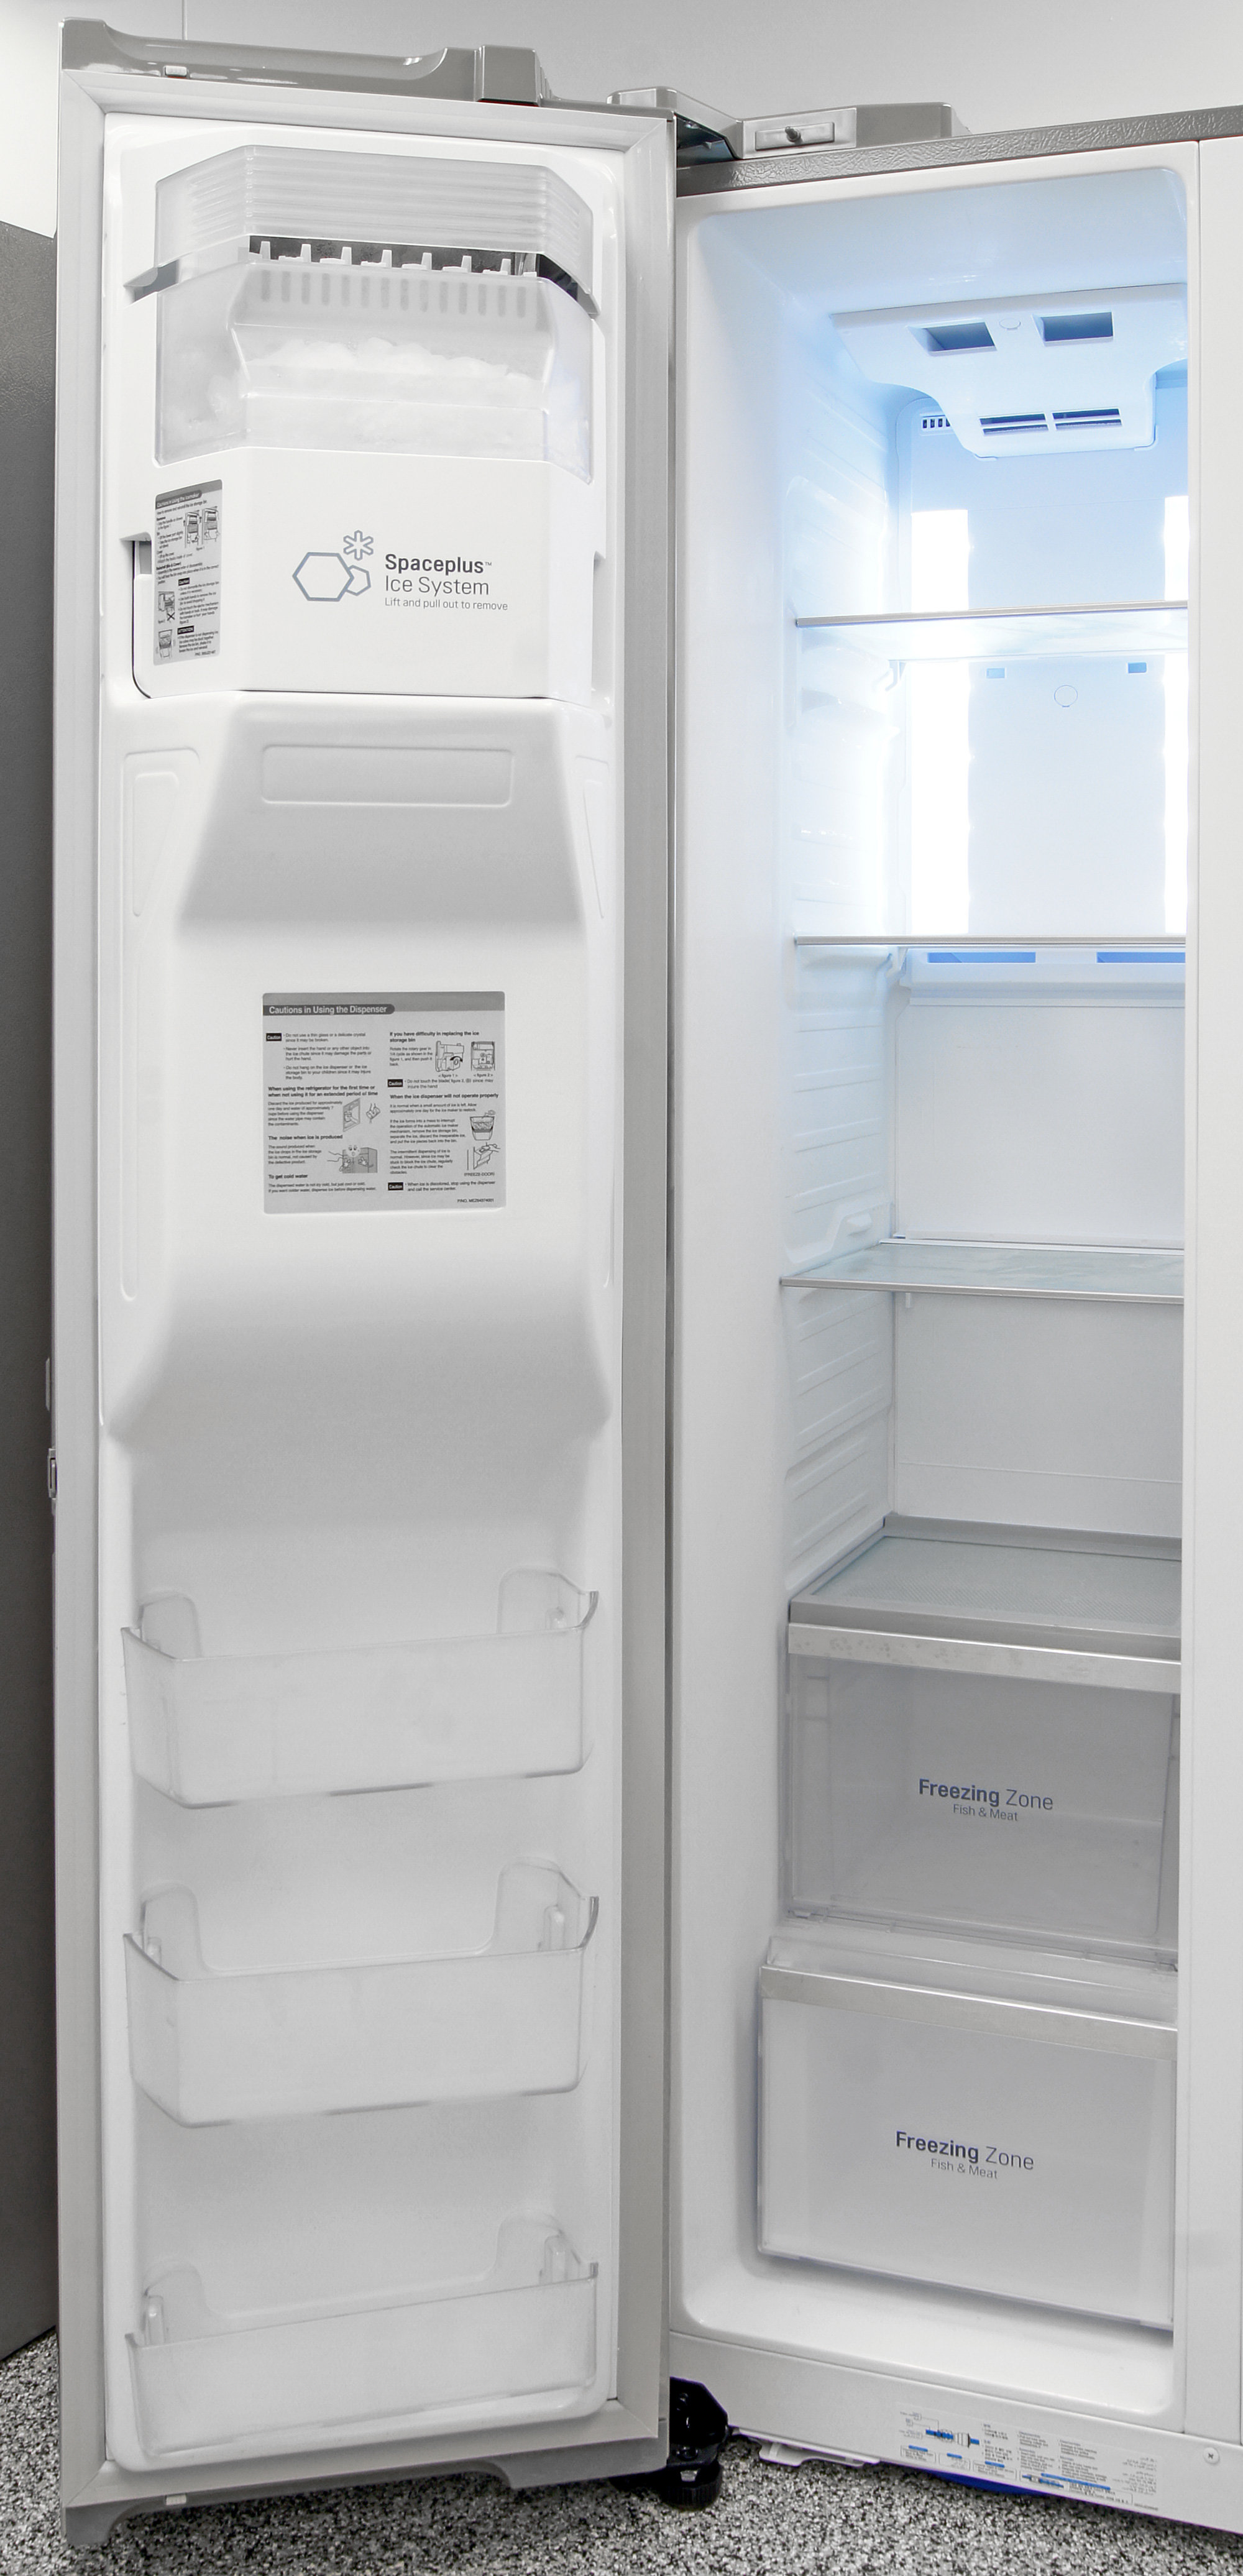 The LG LSC22991ST's freezer uses its limited space and traditional layout quite well.